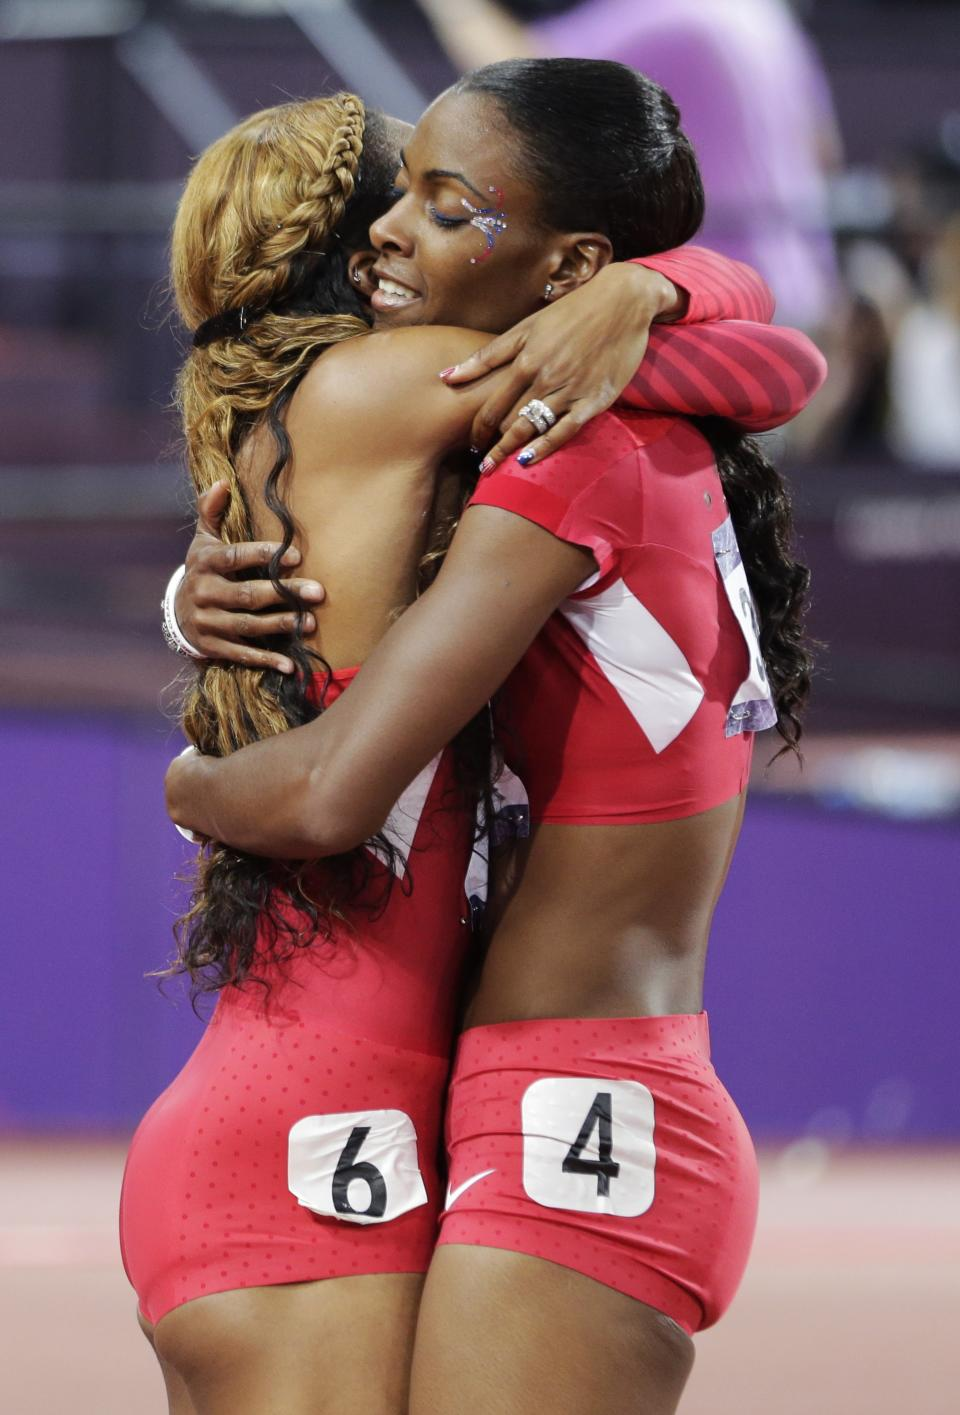 United States' Sanya Richards-Ross, left, is embraced by United States' Deedee Trotter after she won gold in the women's 400-meter final during the athletics in the Olympic Stadium at the 2012 Summer Olympics, London, Sunday, Aug. 5, 2012. (AP Photo/David J. Phillip)